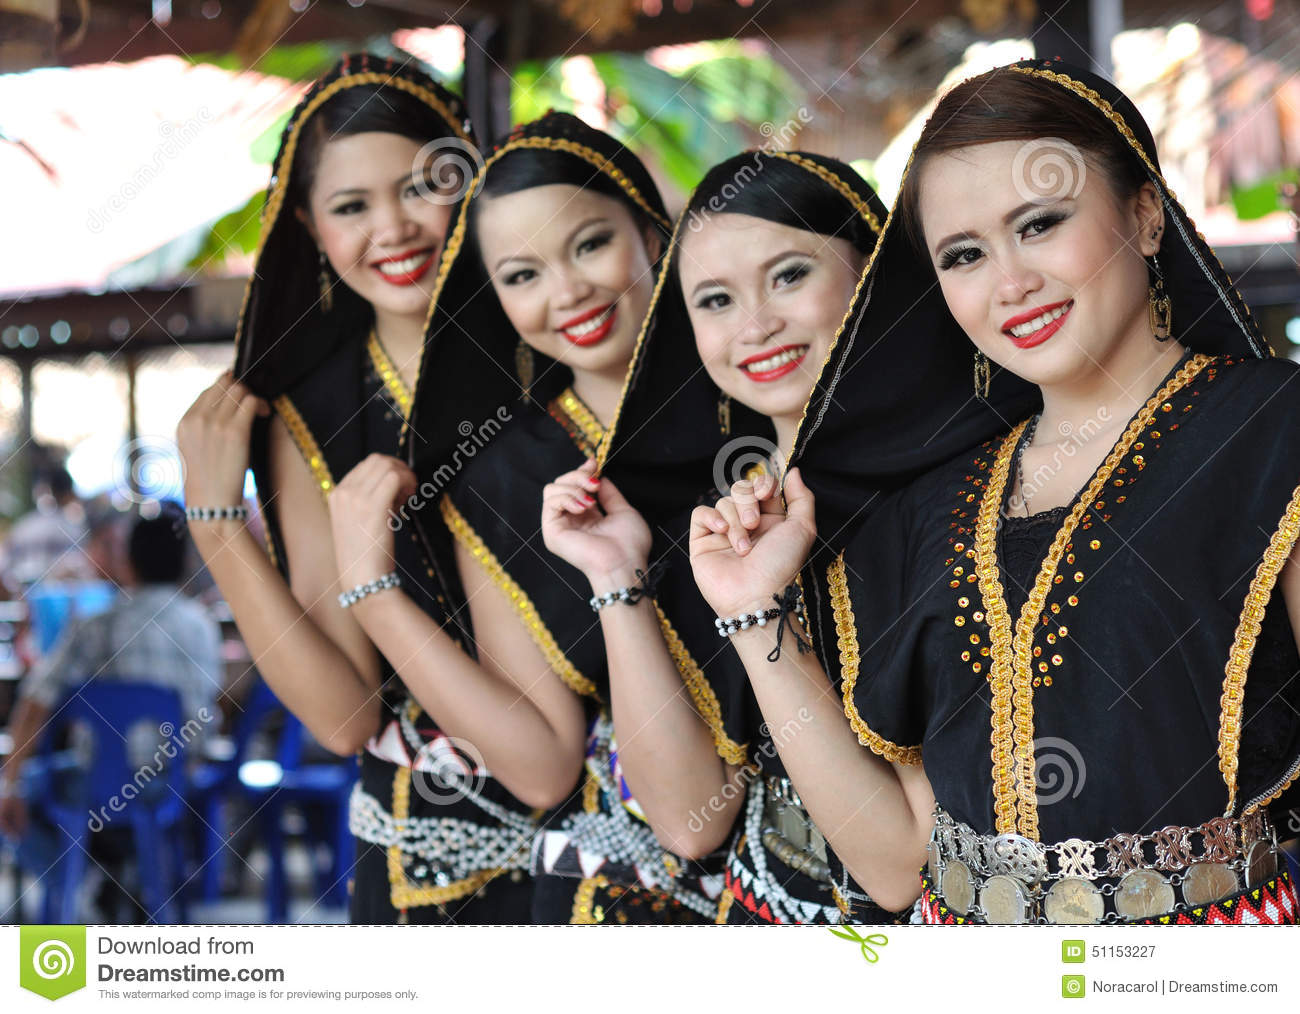 kota kinabalu girls 2018-6-7  with the large population of muslims living in kota kinabalu, searching for halal food is fairly easy although, it is very common to find muslim friendly restaurants (that are not operated by muslim owners), which are labelled serve no pork.